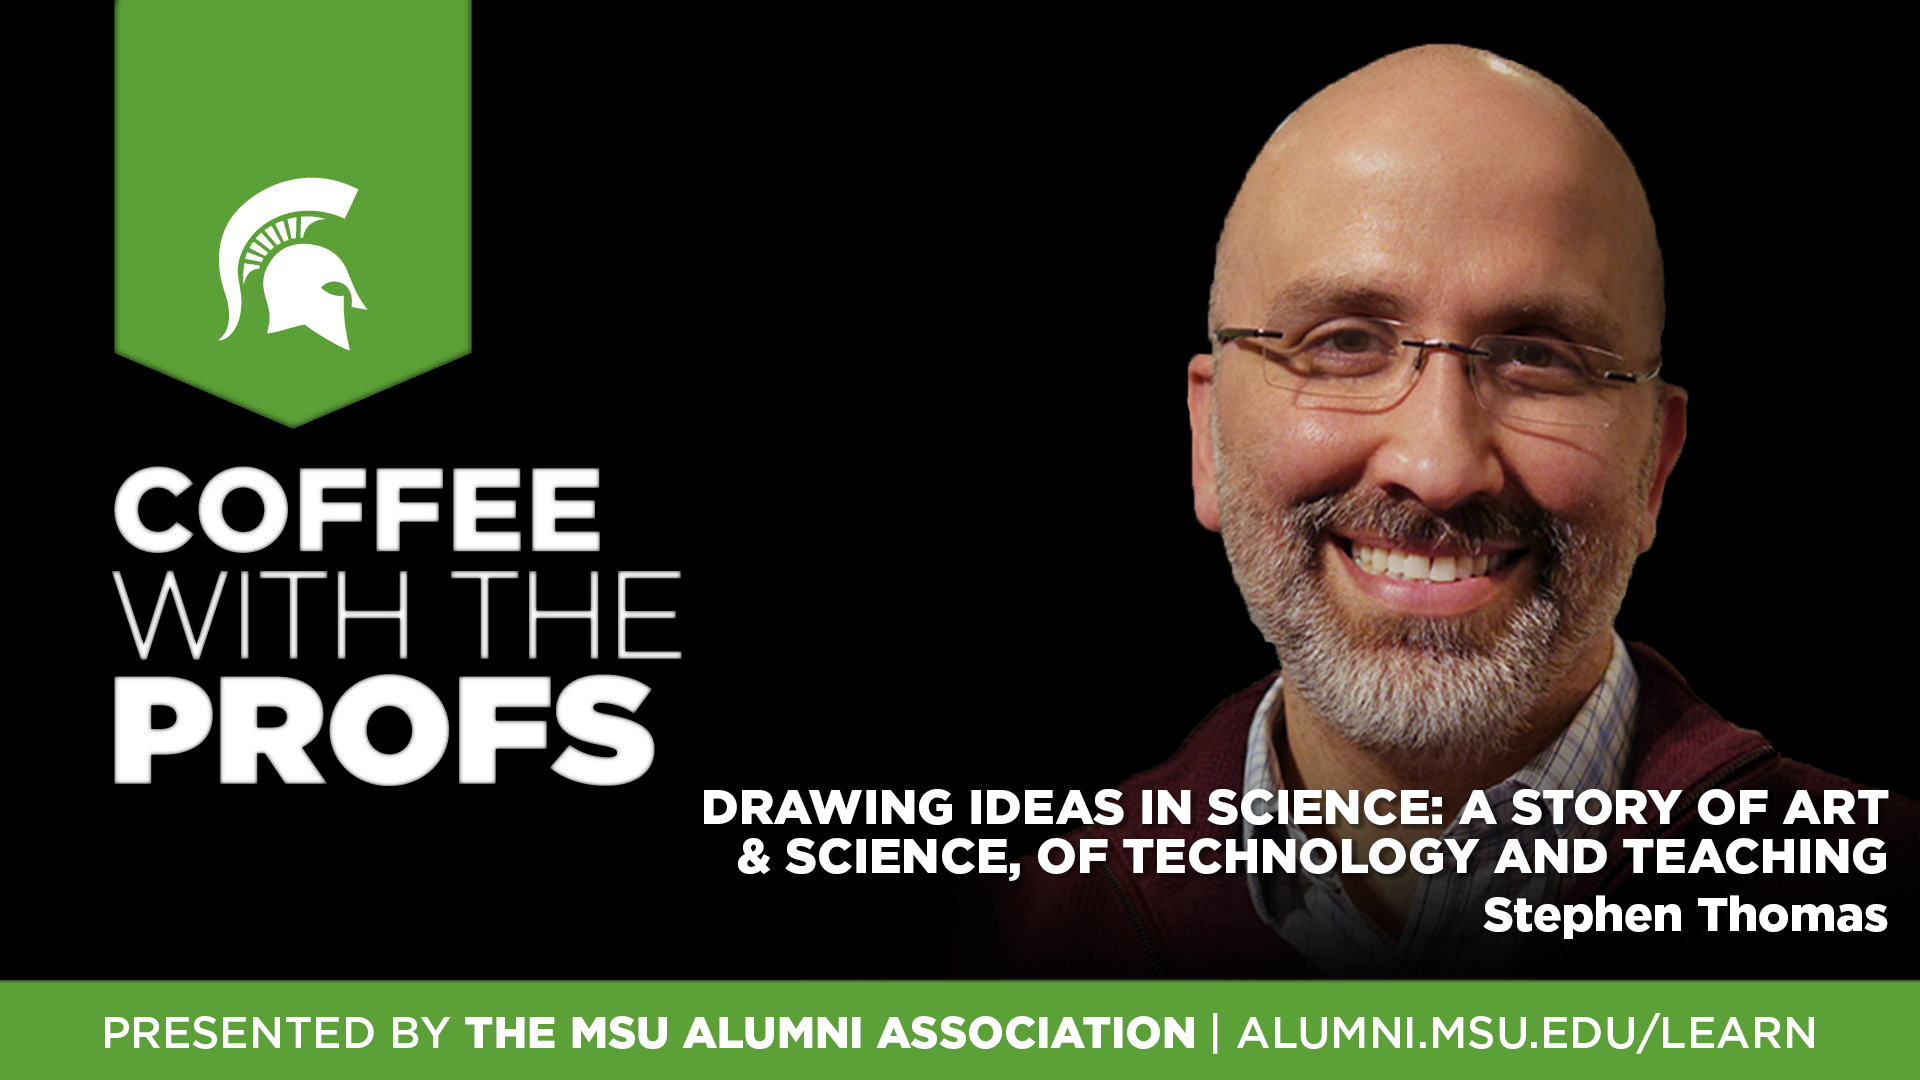 Livestream cover image for CWTP   Drawing Ideas in Science: A Story of Art and Science, of Technology and Teaching